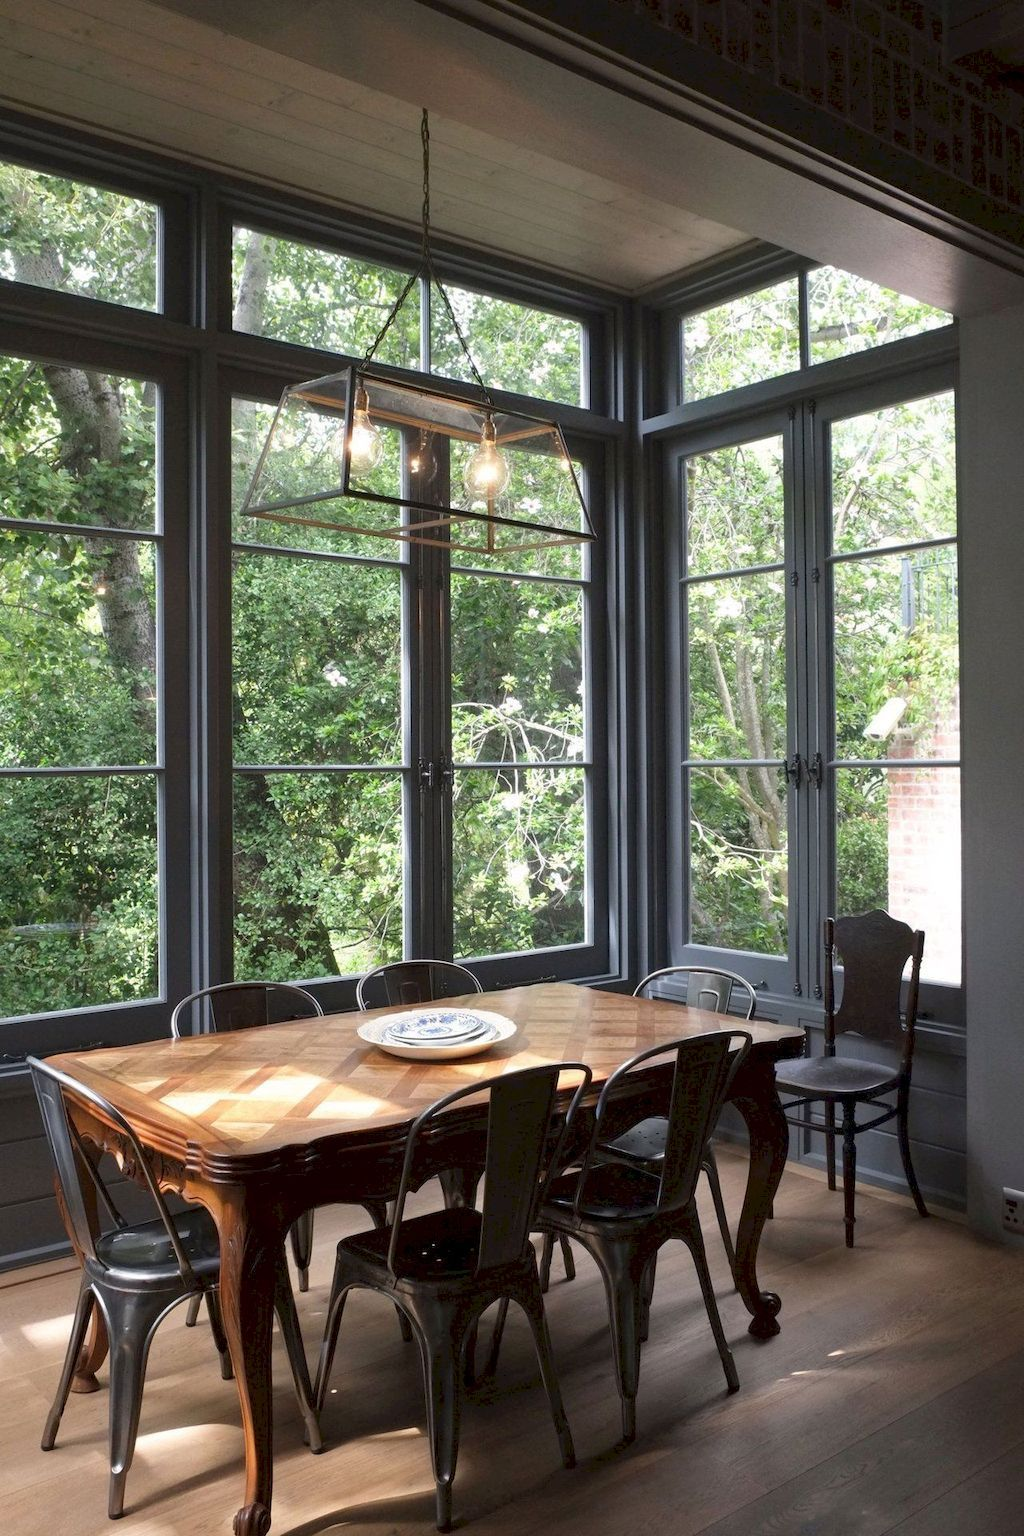 Dining nook conservatory feel darks and wood garden view greenery room witha  also home decor outlets beautiful patio inspiration voguehem in rh pinterest